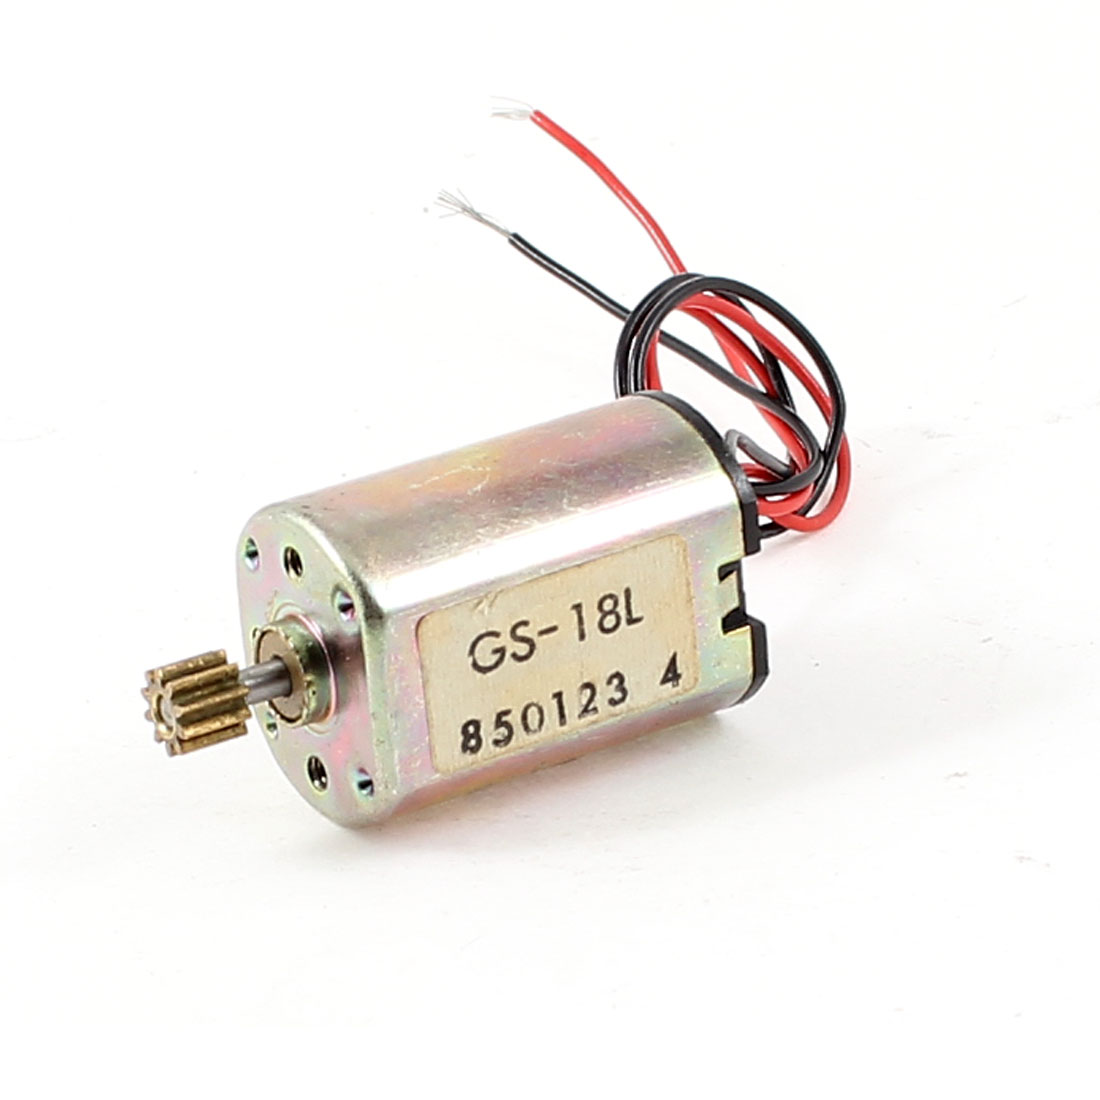 2850-11800-RPM-Rotary-Speed-Cylinder-Shape-Vibration-Micro-DC-Geared-Motor-6-12V